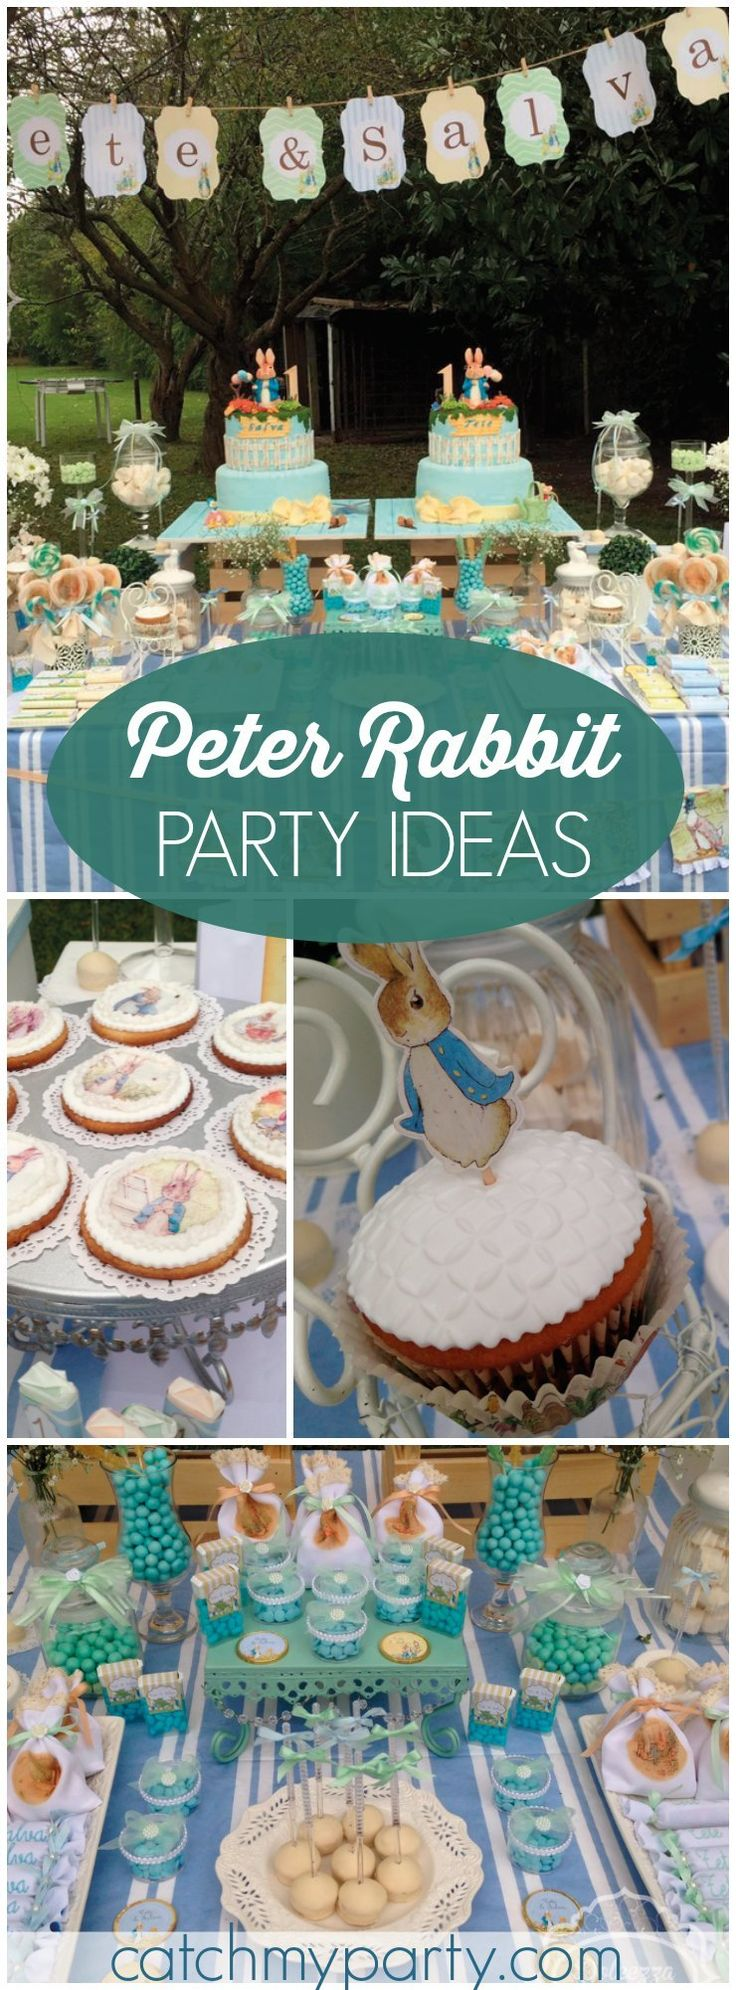 This amazing Peter Rabbit party is for a first birthday for twins! See more party ideas at CatchMyParty.com!